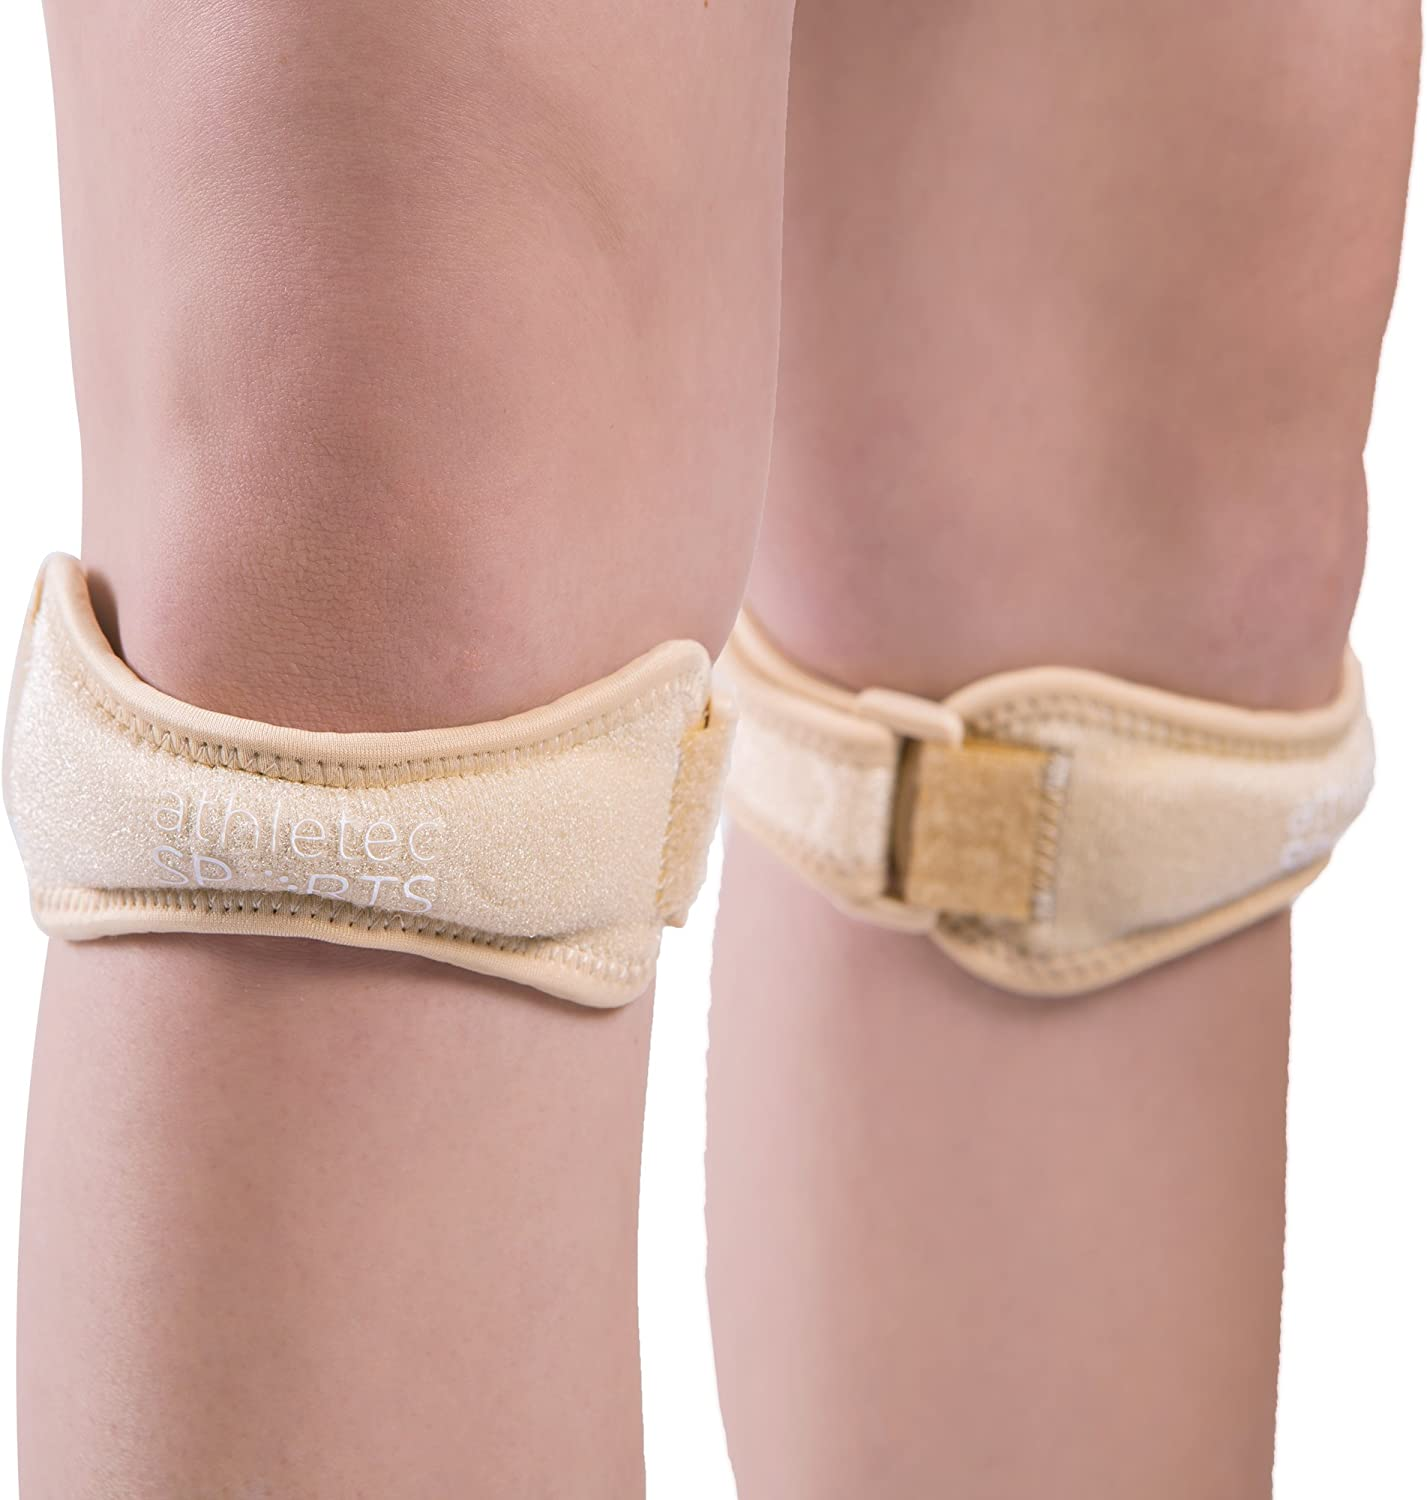 Athletec Sport Patella Knee Strap 5 ☆ very popular Pain Stabilizer Relief and half for